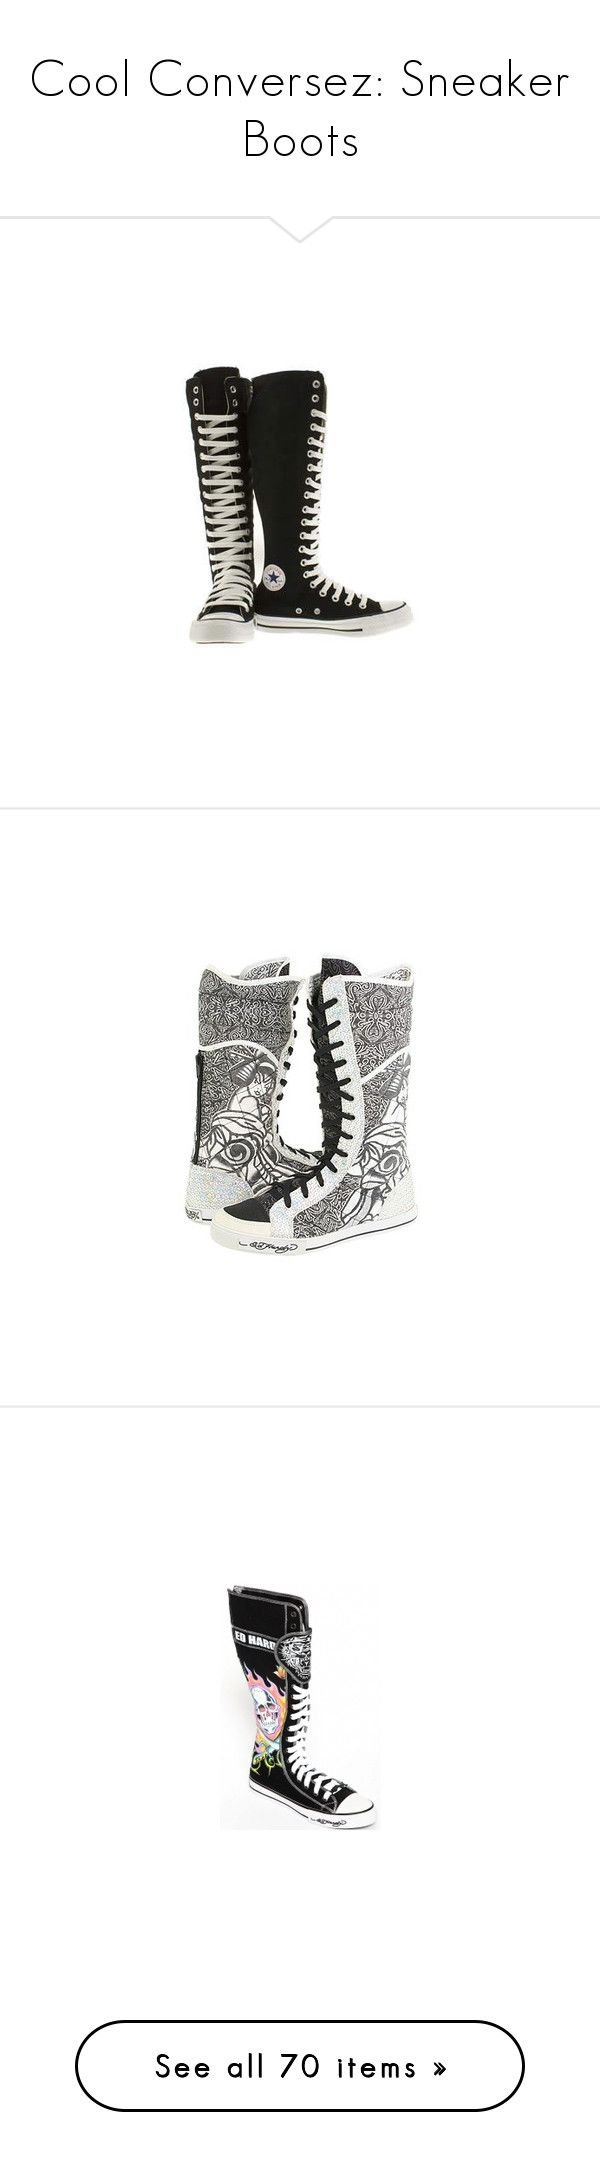 """Cool Conversez: Sneaker Boots"" by maria-iilov3yuhhii-noor ❤ liked on Polyvore featuring shoes, sneakers, converse, boots, zapatos, black and white sneakers, converse sneakers, black white shoes, white and black sneakers and black and white shoes"